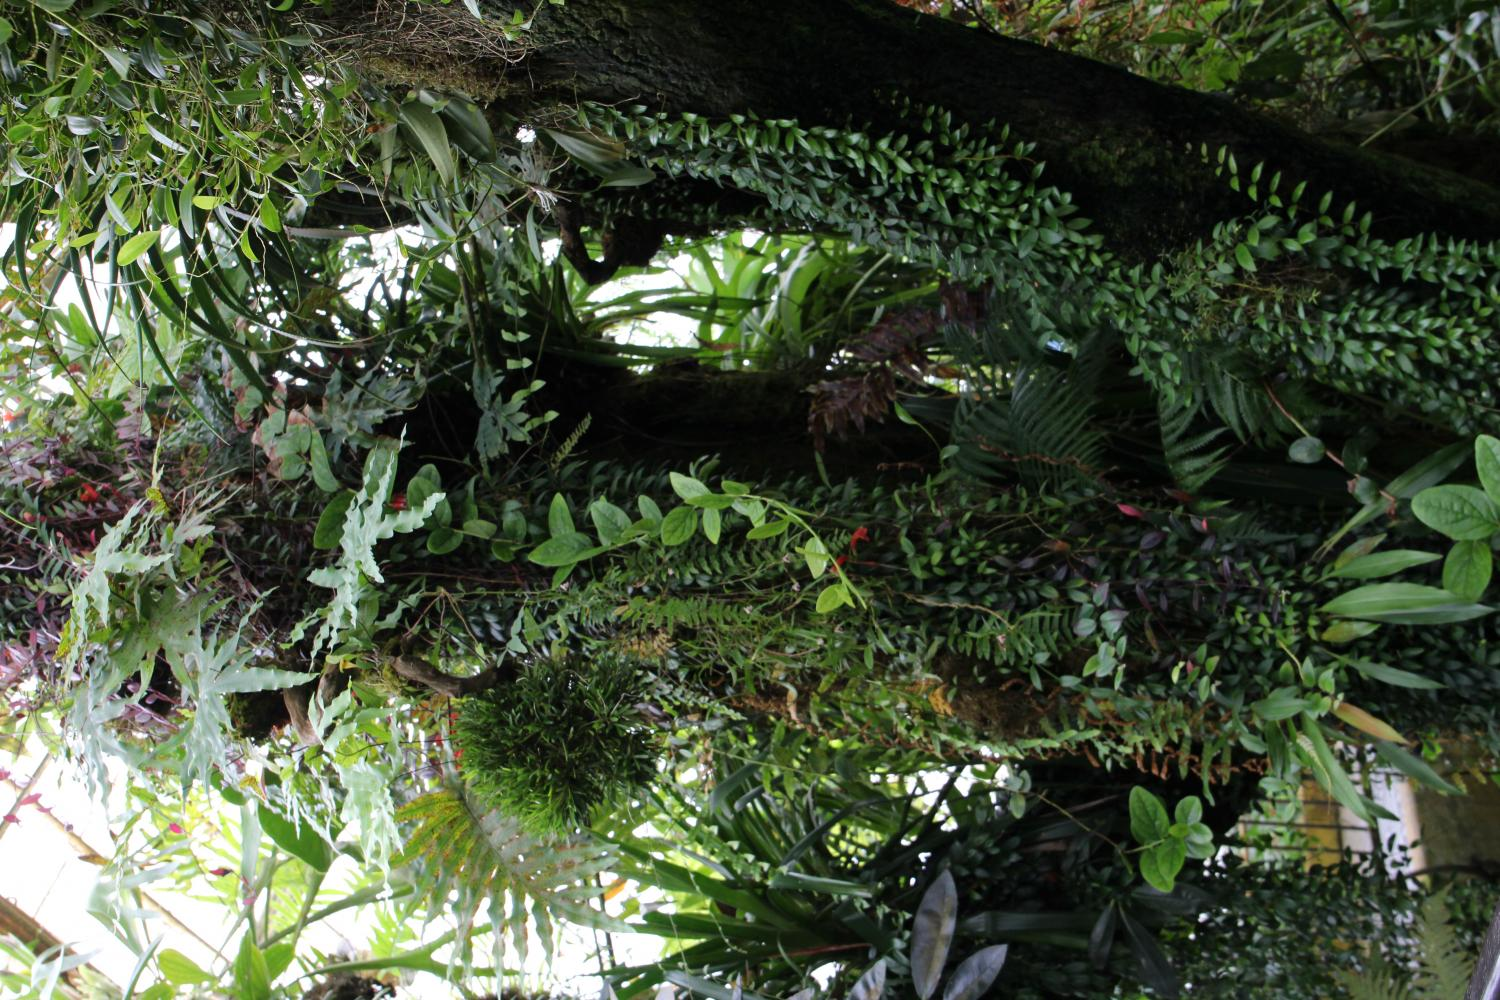 The Highland Tropics of the Flowers Conservatory presents a tropical setting in which high-altitude orchids, tree ferns, and dense mosses seek shelter in water-rich soil and foggy atmosphere.